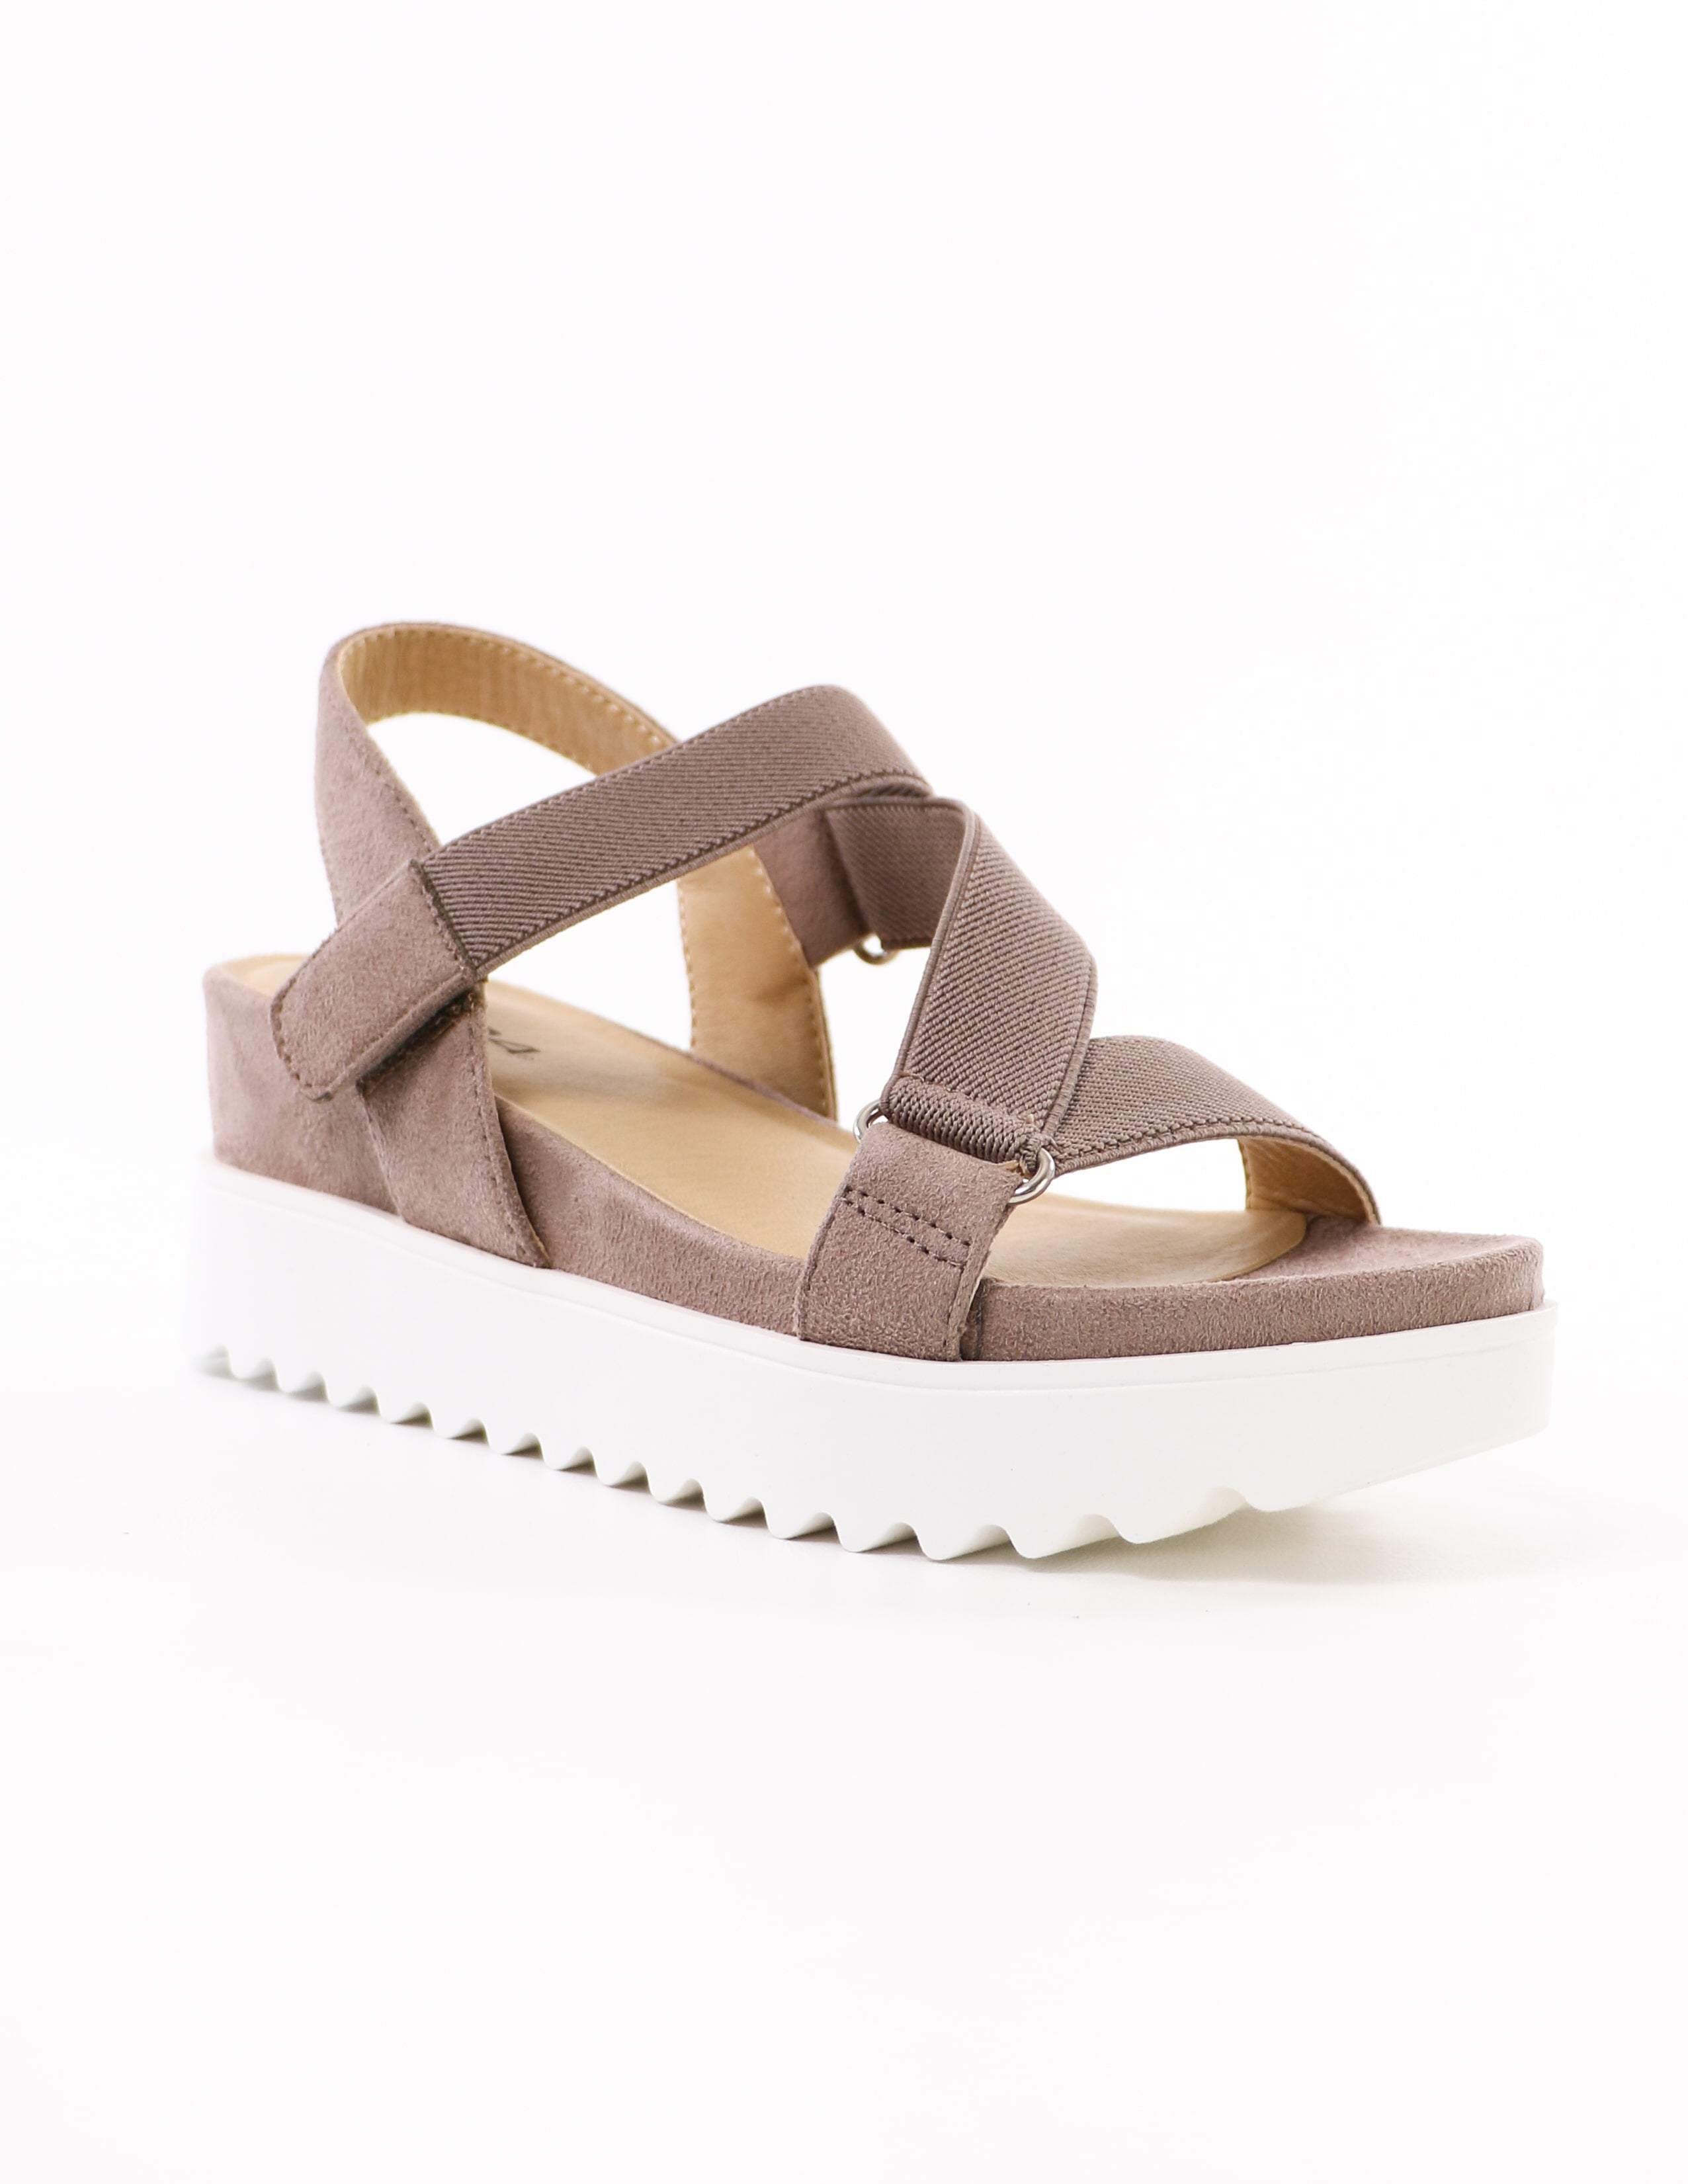 taupe strappy go lucky soda platform sandal with athletic straps and white chunky sole